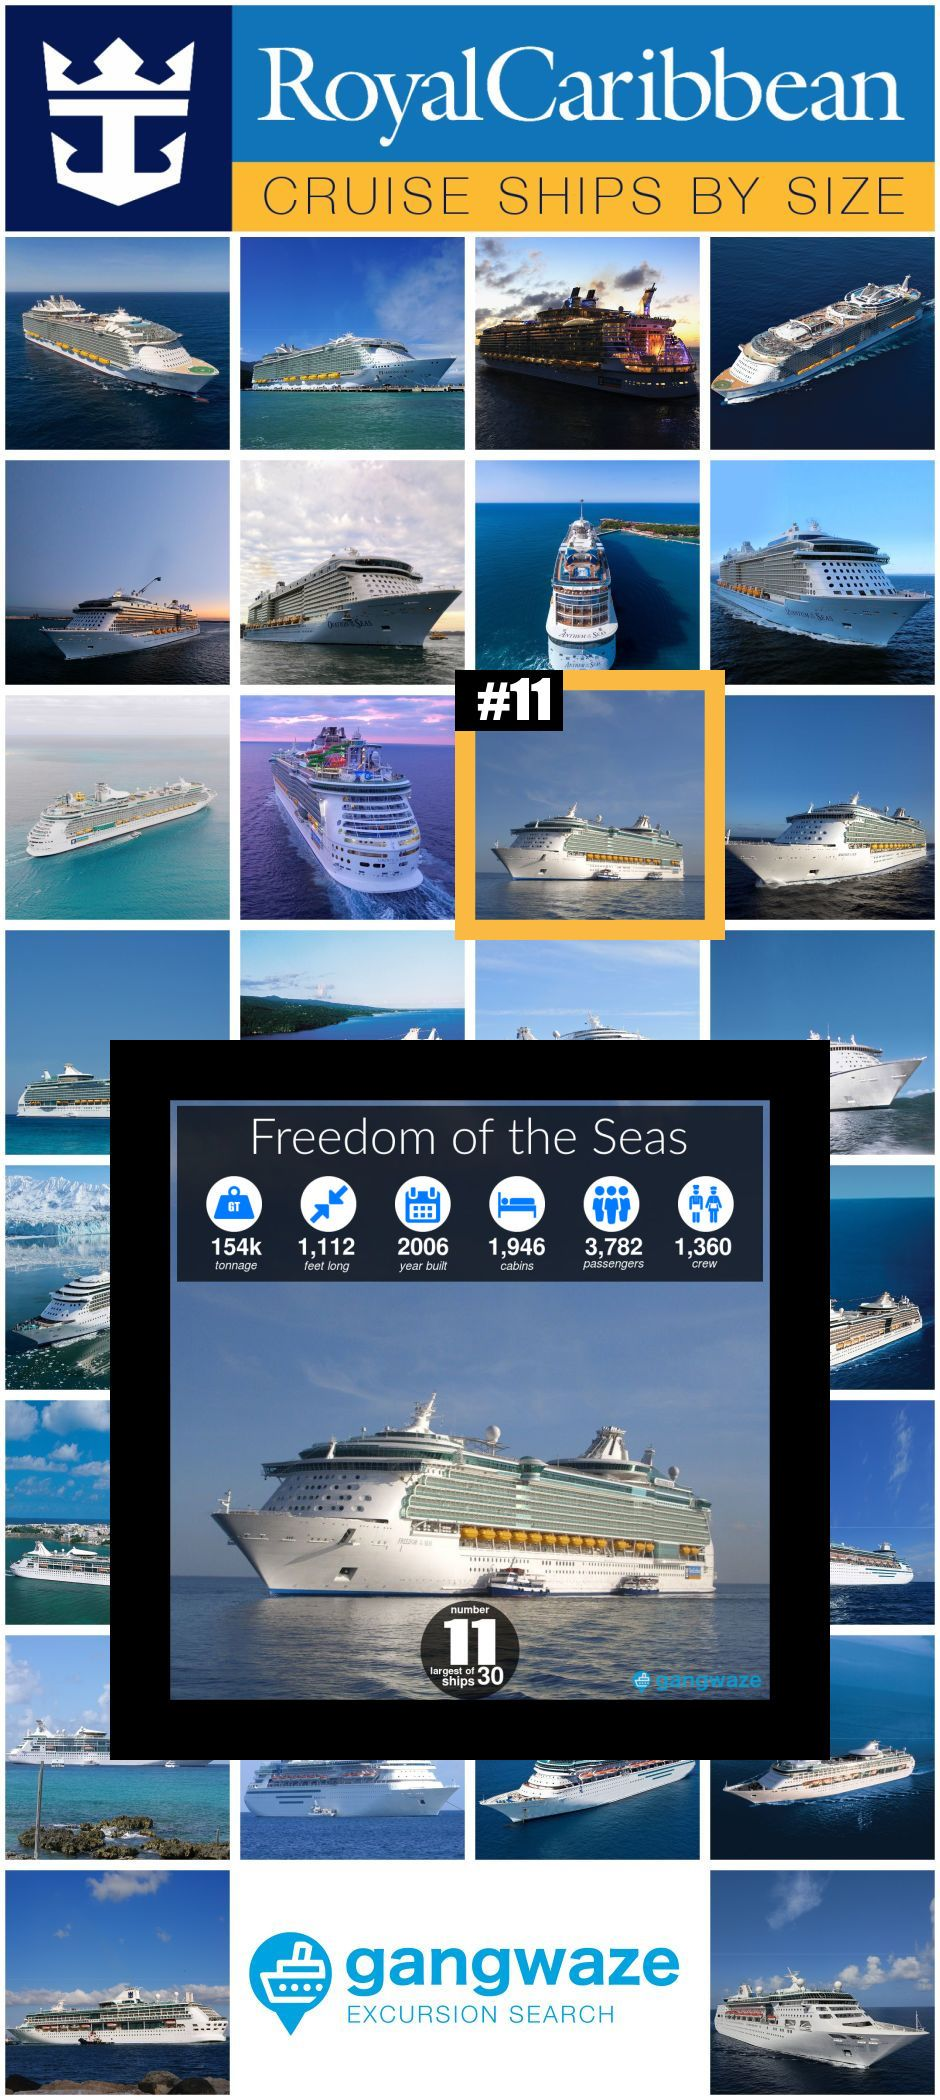 Royal Caribbean Ships By Size 2021 With Comparison Chart Royal Caribbean Ships Adventure Of The Seas Enchantment Of The Seas